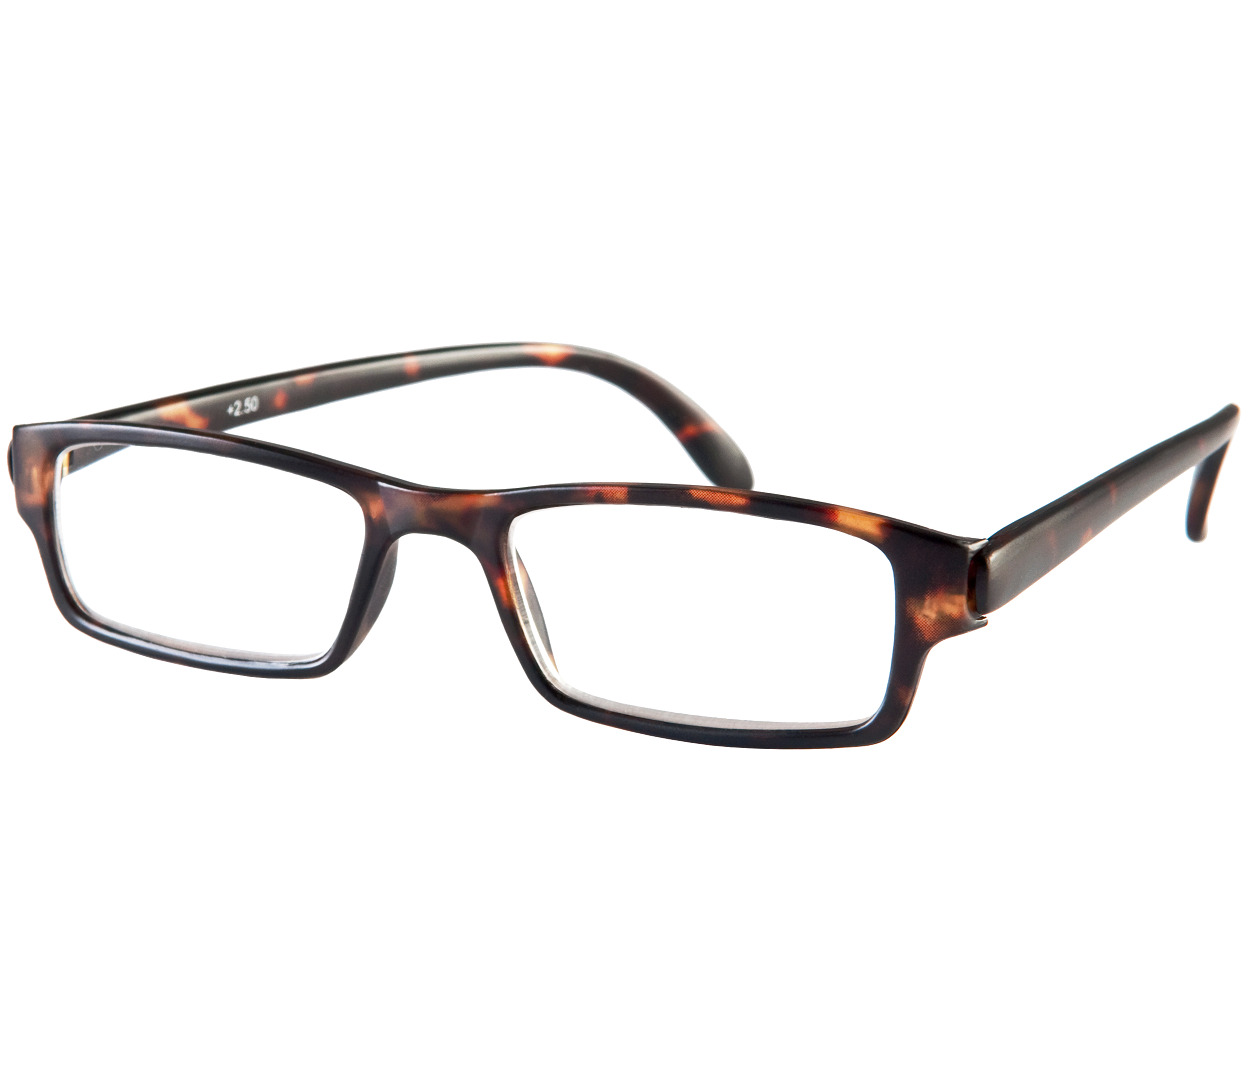 Main Image (Angle) - Jump (Tortoiseshell) Classic Reading Glasses